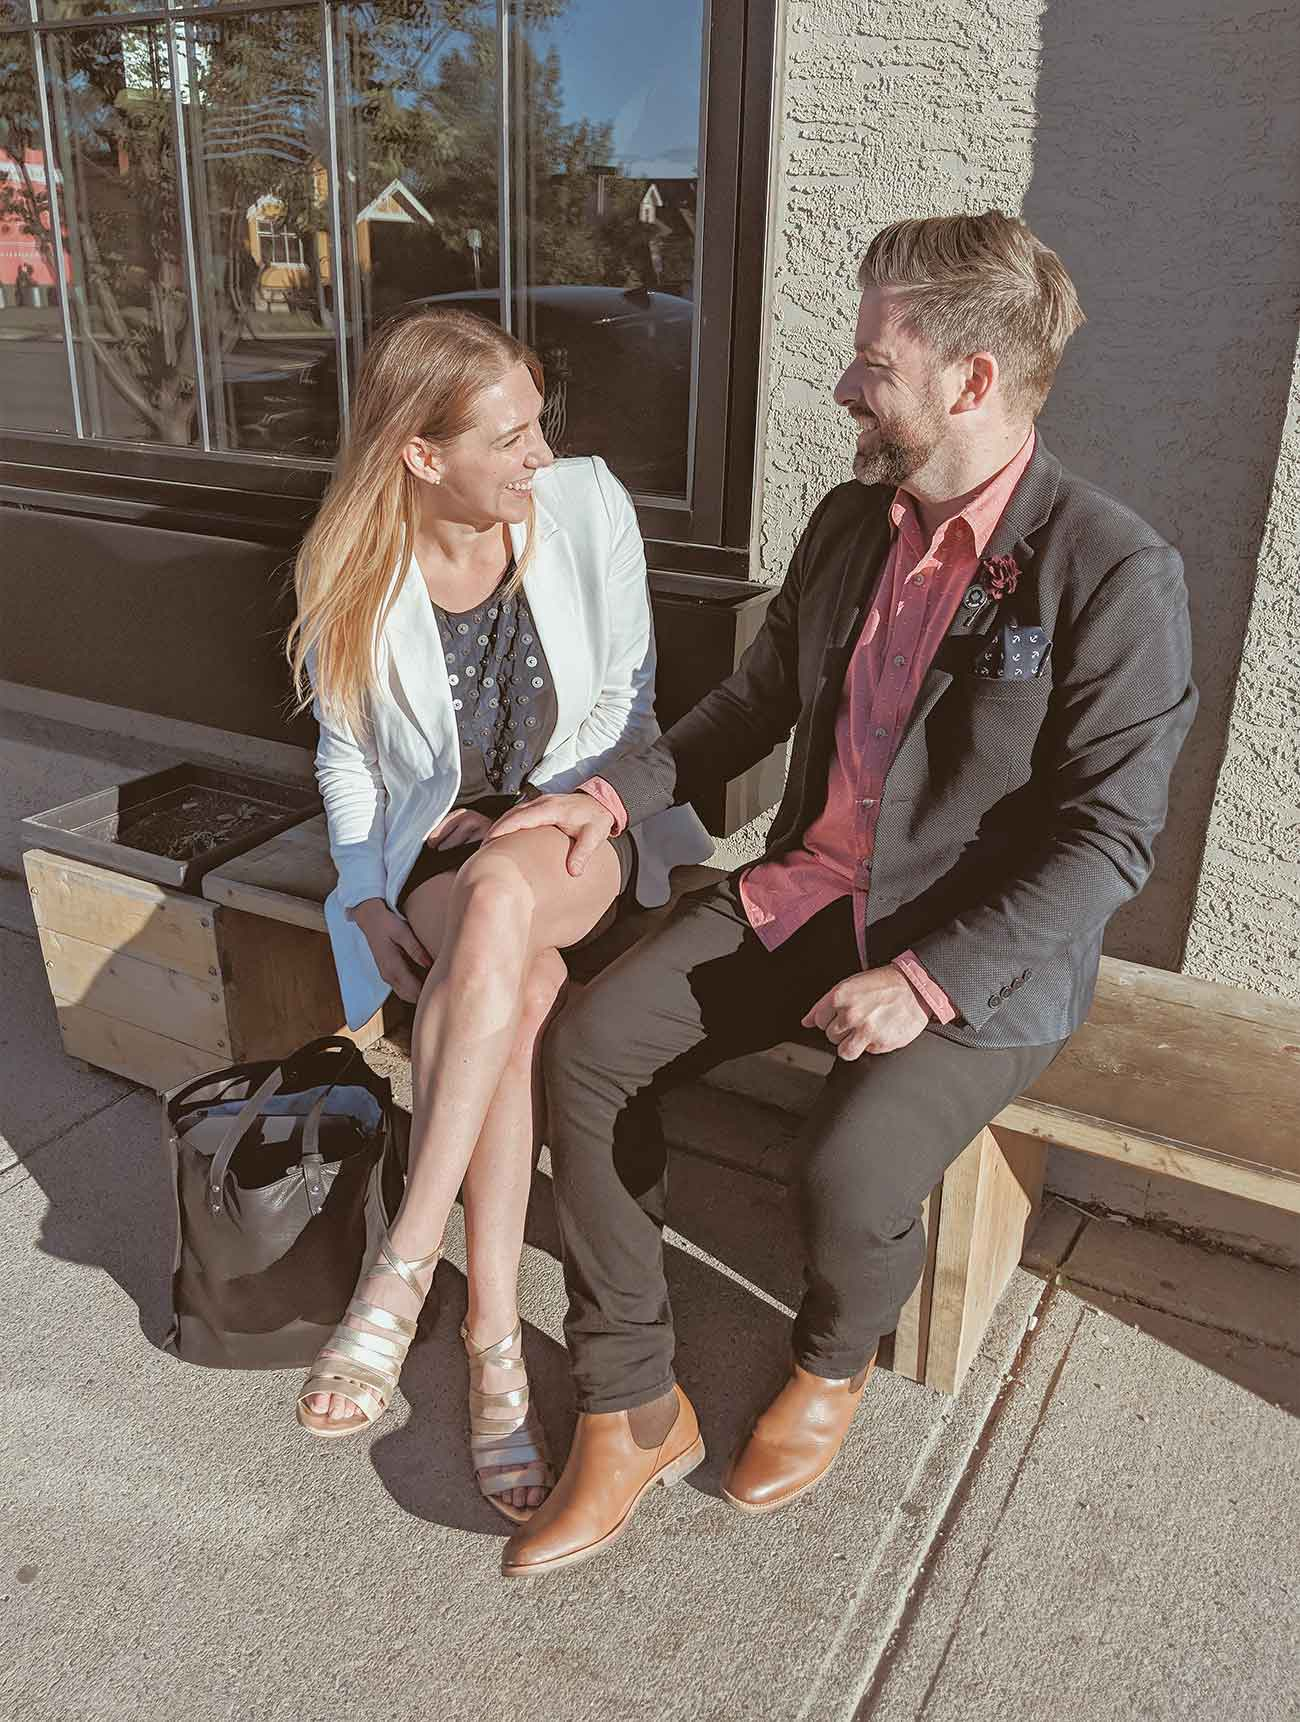 Calgary Travel Guide - Mandy and James in The Victoria Heeled Sandal and London Chelsea Boot - Poppy Barley